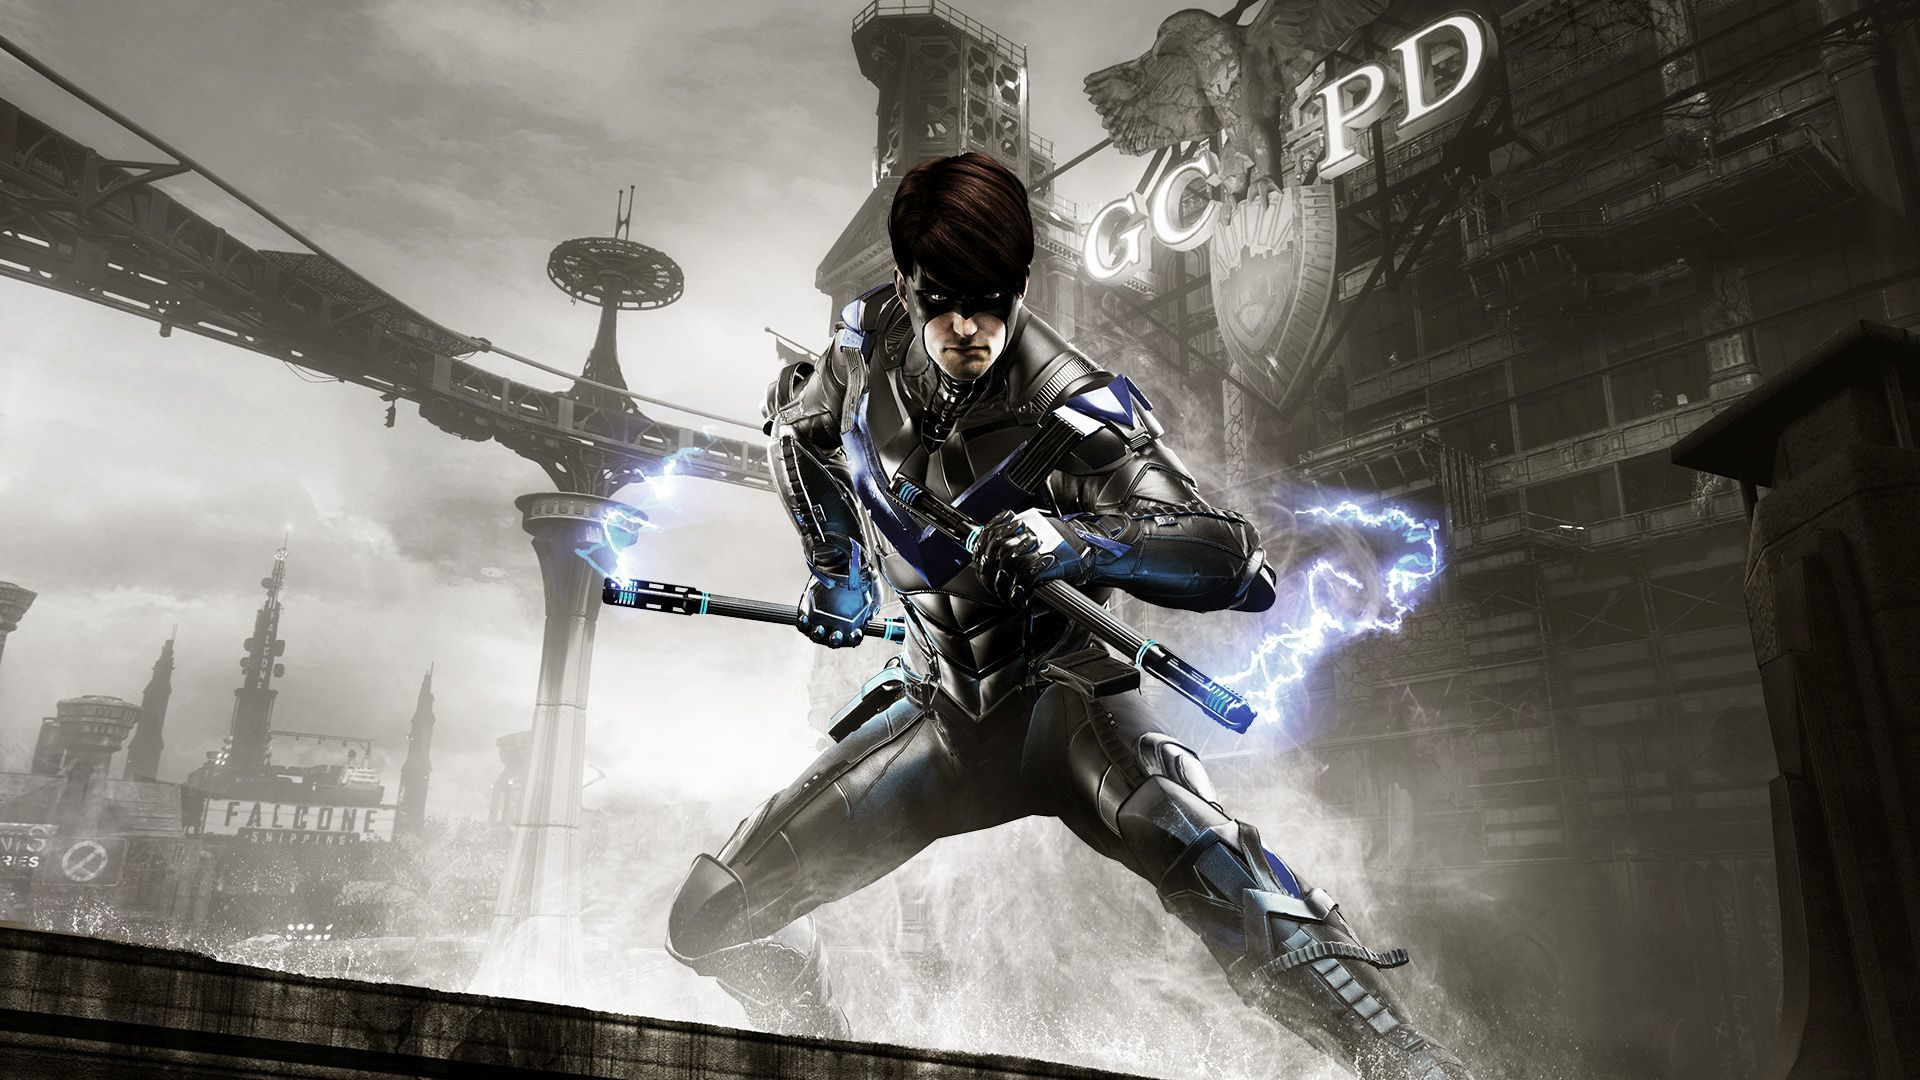 Batman Arkham Knight Nightwing Wallpapers HD Wallpapers 1920x1080